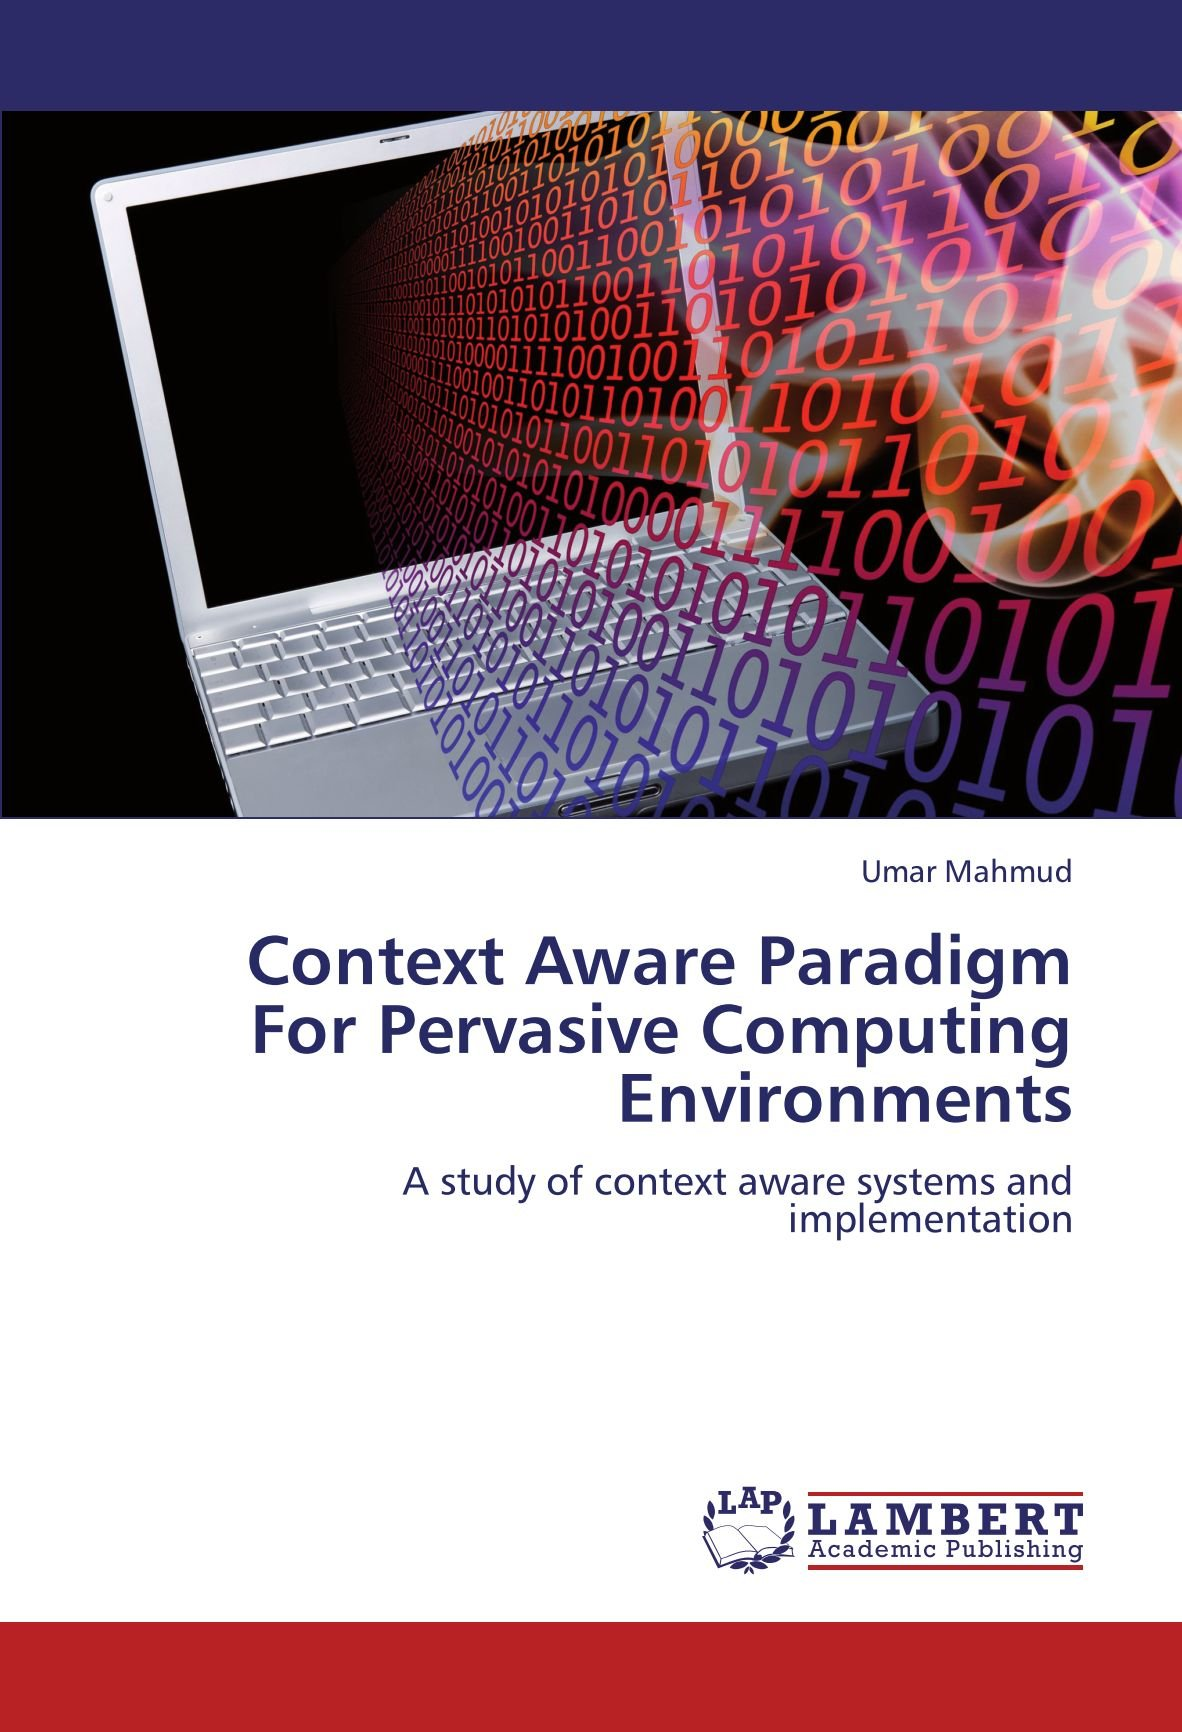 Context Aware Paradigm For Pervasive Computing Environments: A study of context aware systems and implementation PDF